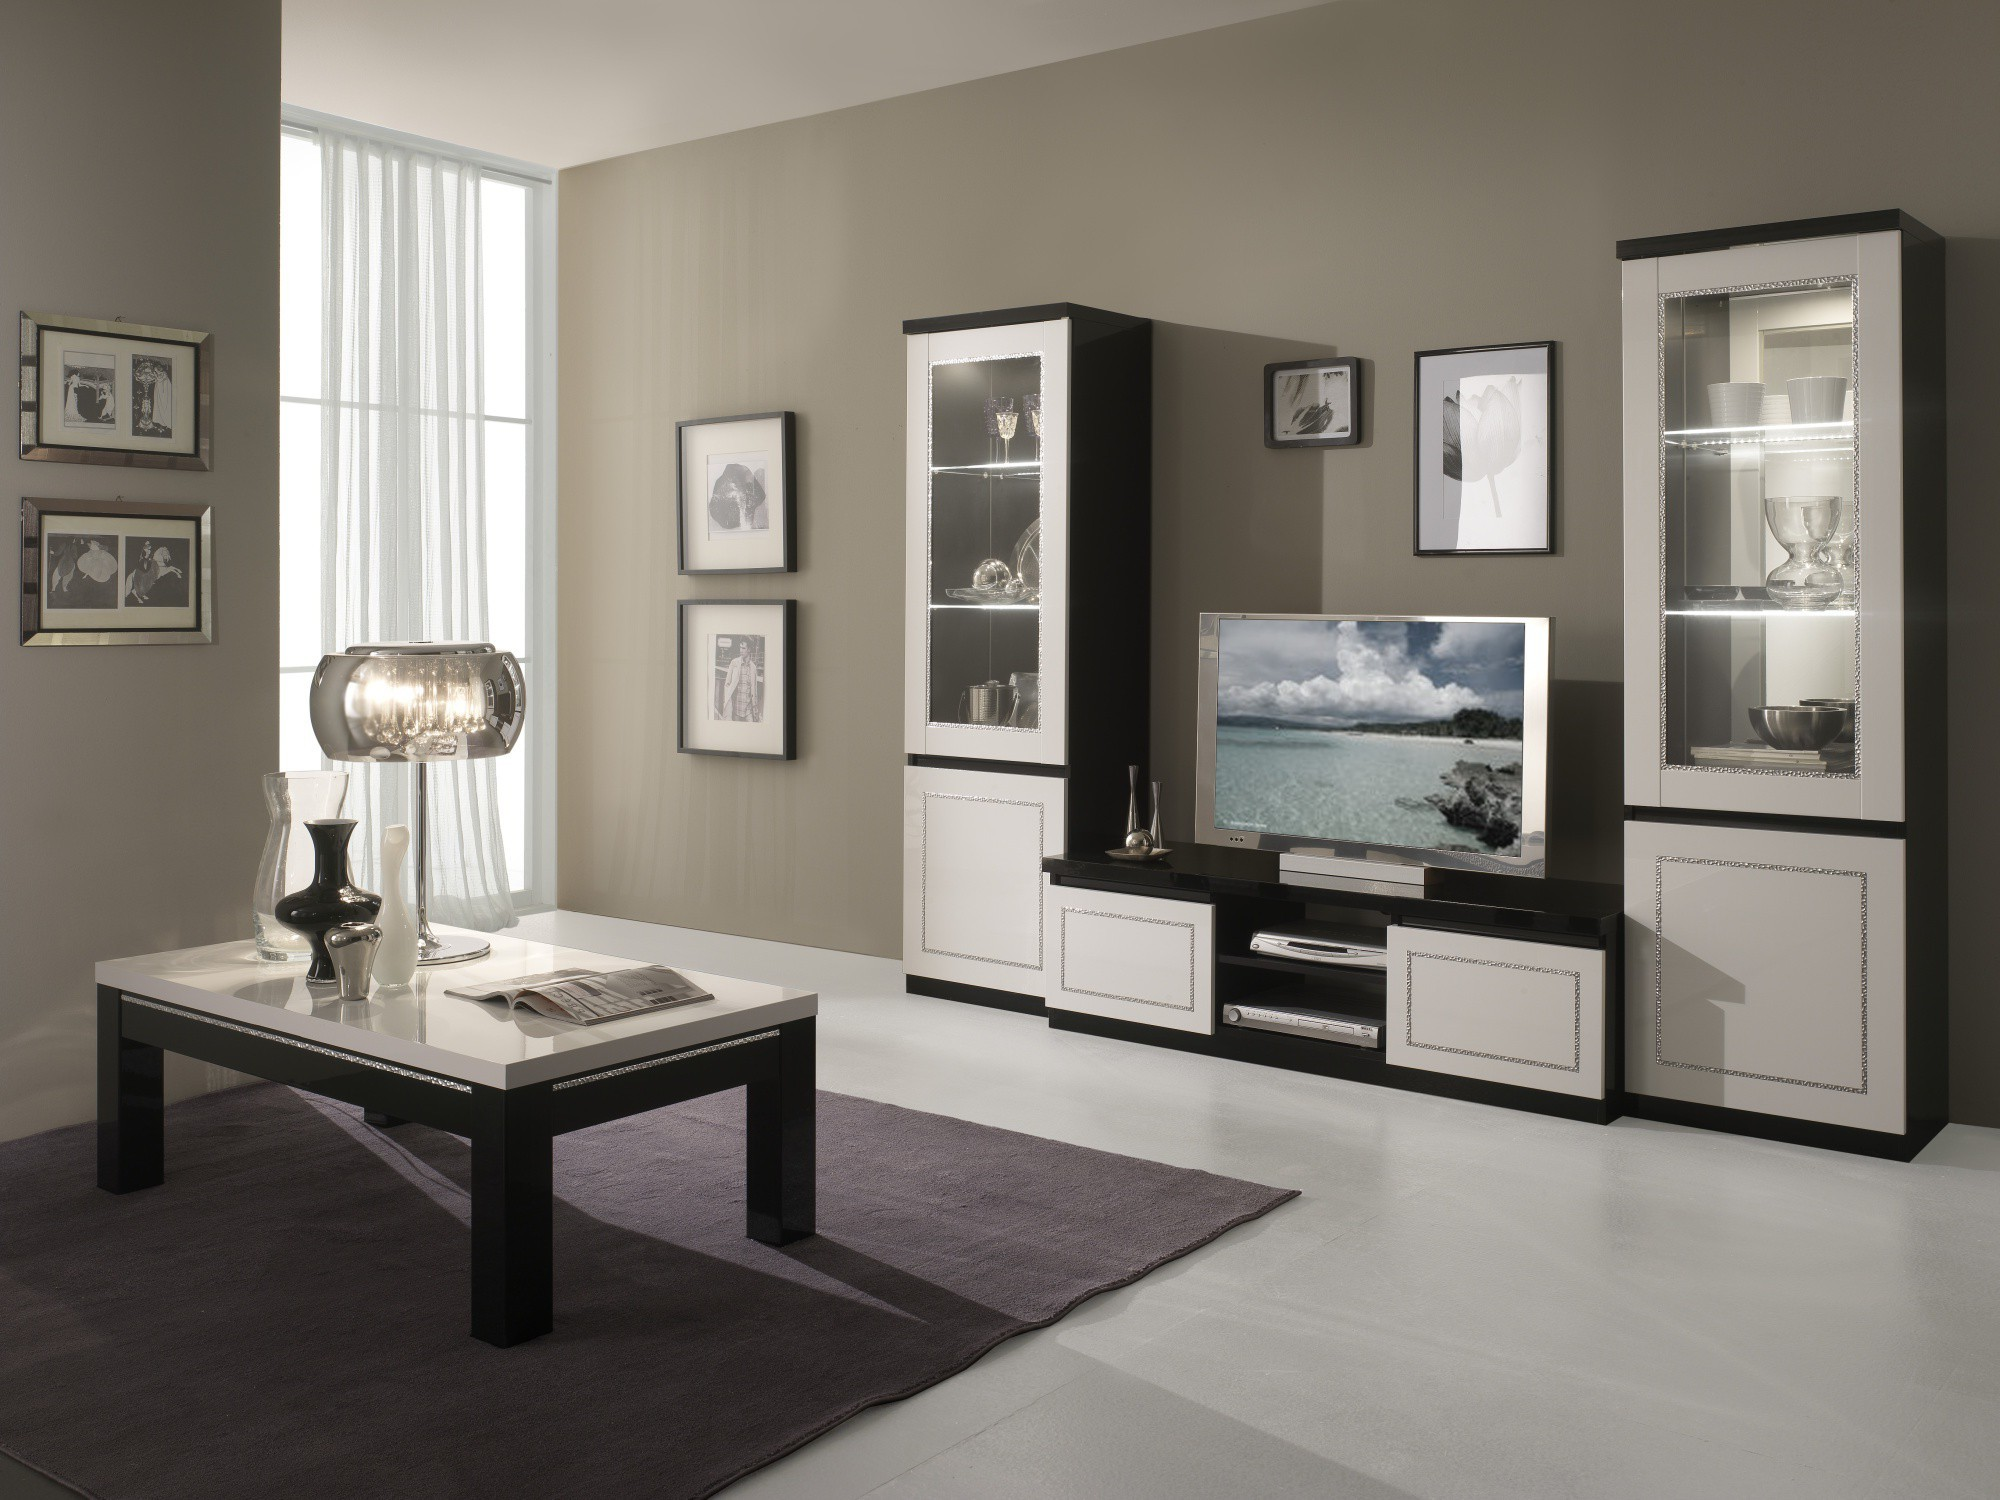 armoire lit pour salon. Black Bedroom Furniture Sets. Home Design Ideas